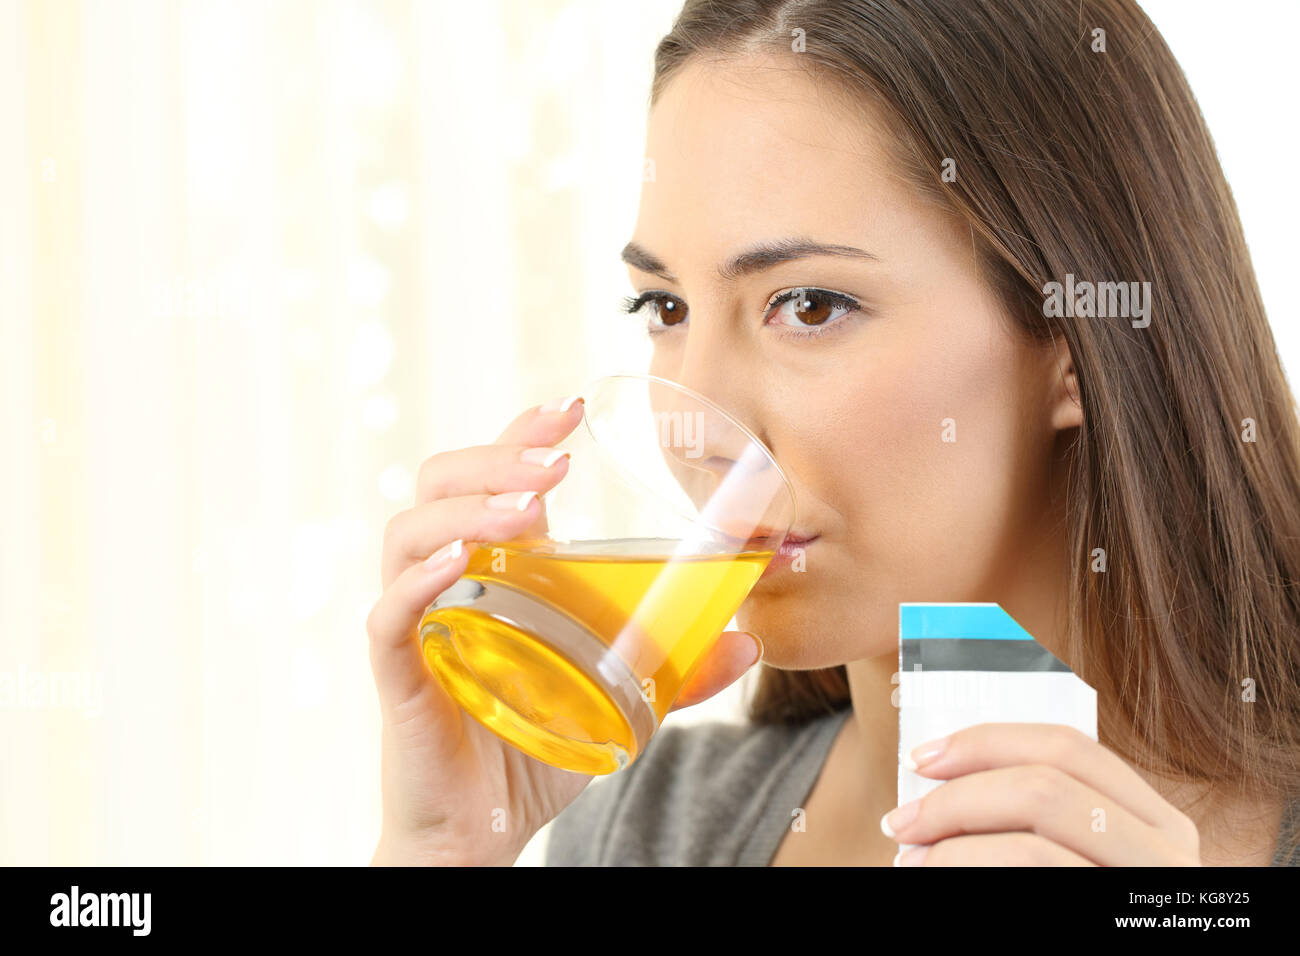 Serious woman drinking an orange liquid medicine in a house interior - Stock Image